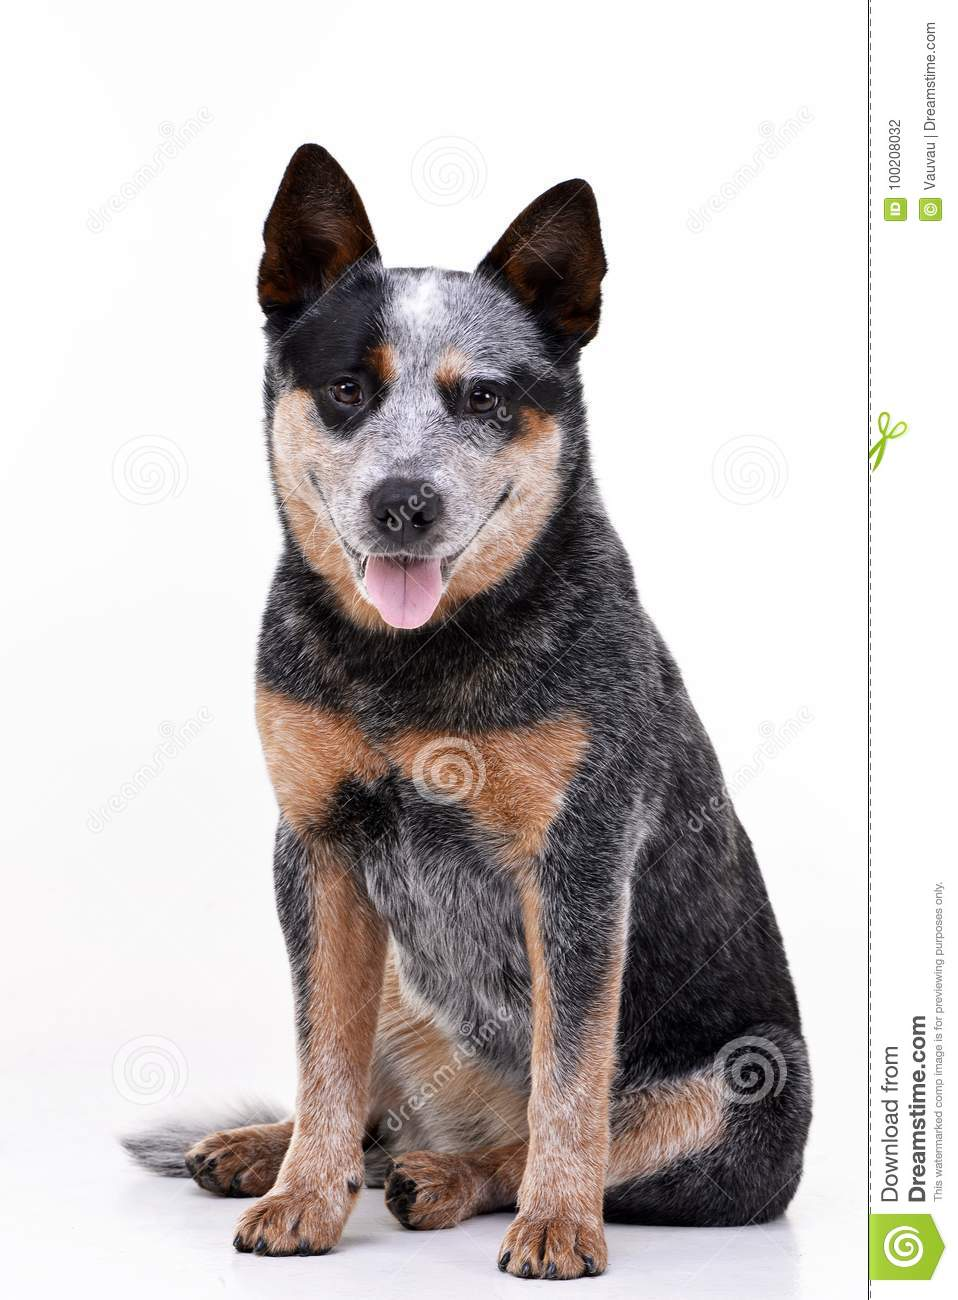 Studio shot of an adorable Australian Cattle Dog